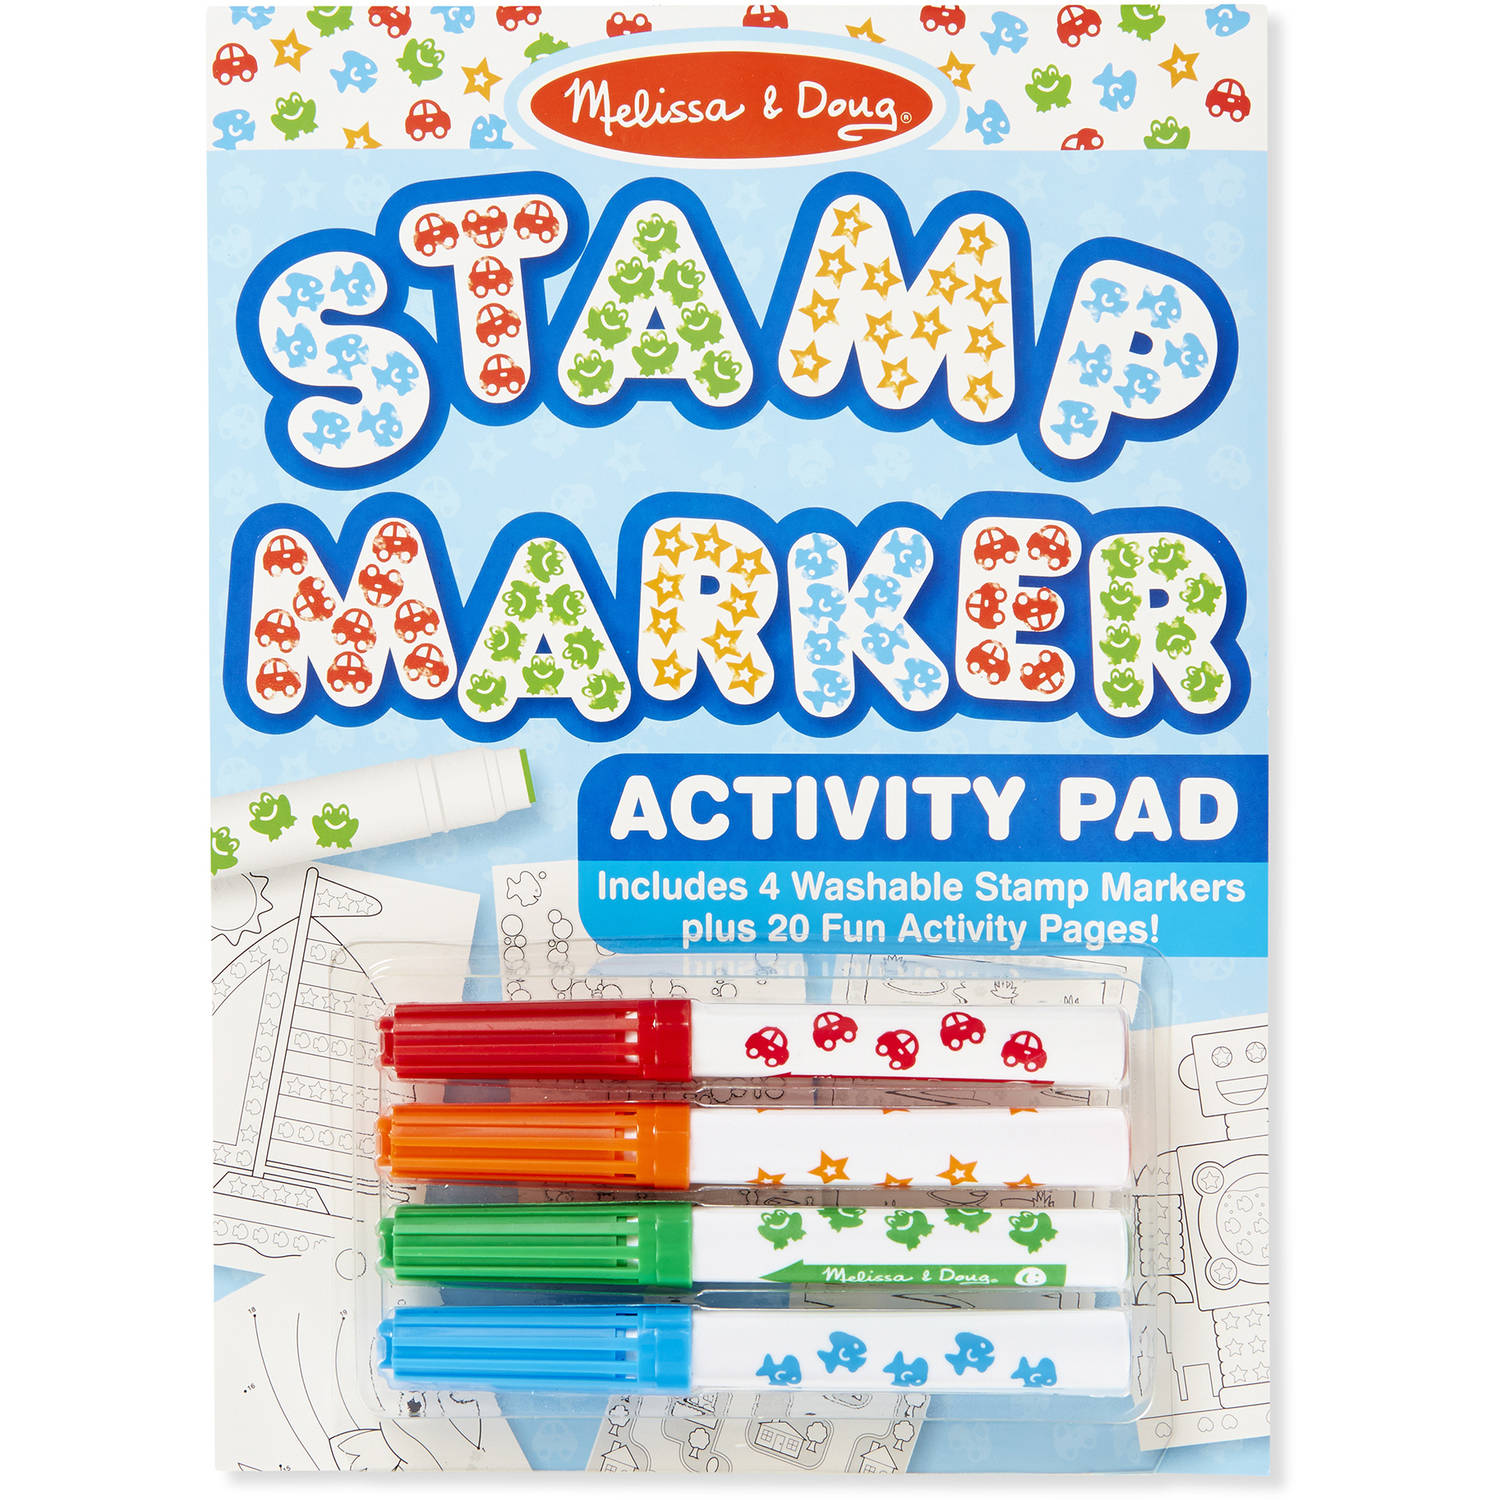 Melissa & Doug Stamp Markers and Activity Pad - Stars, Fish, Cars, and Frogs